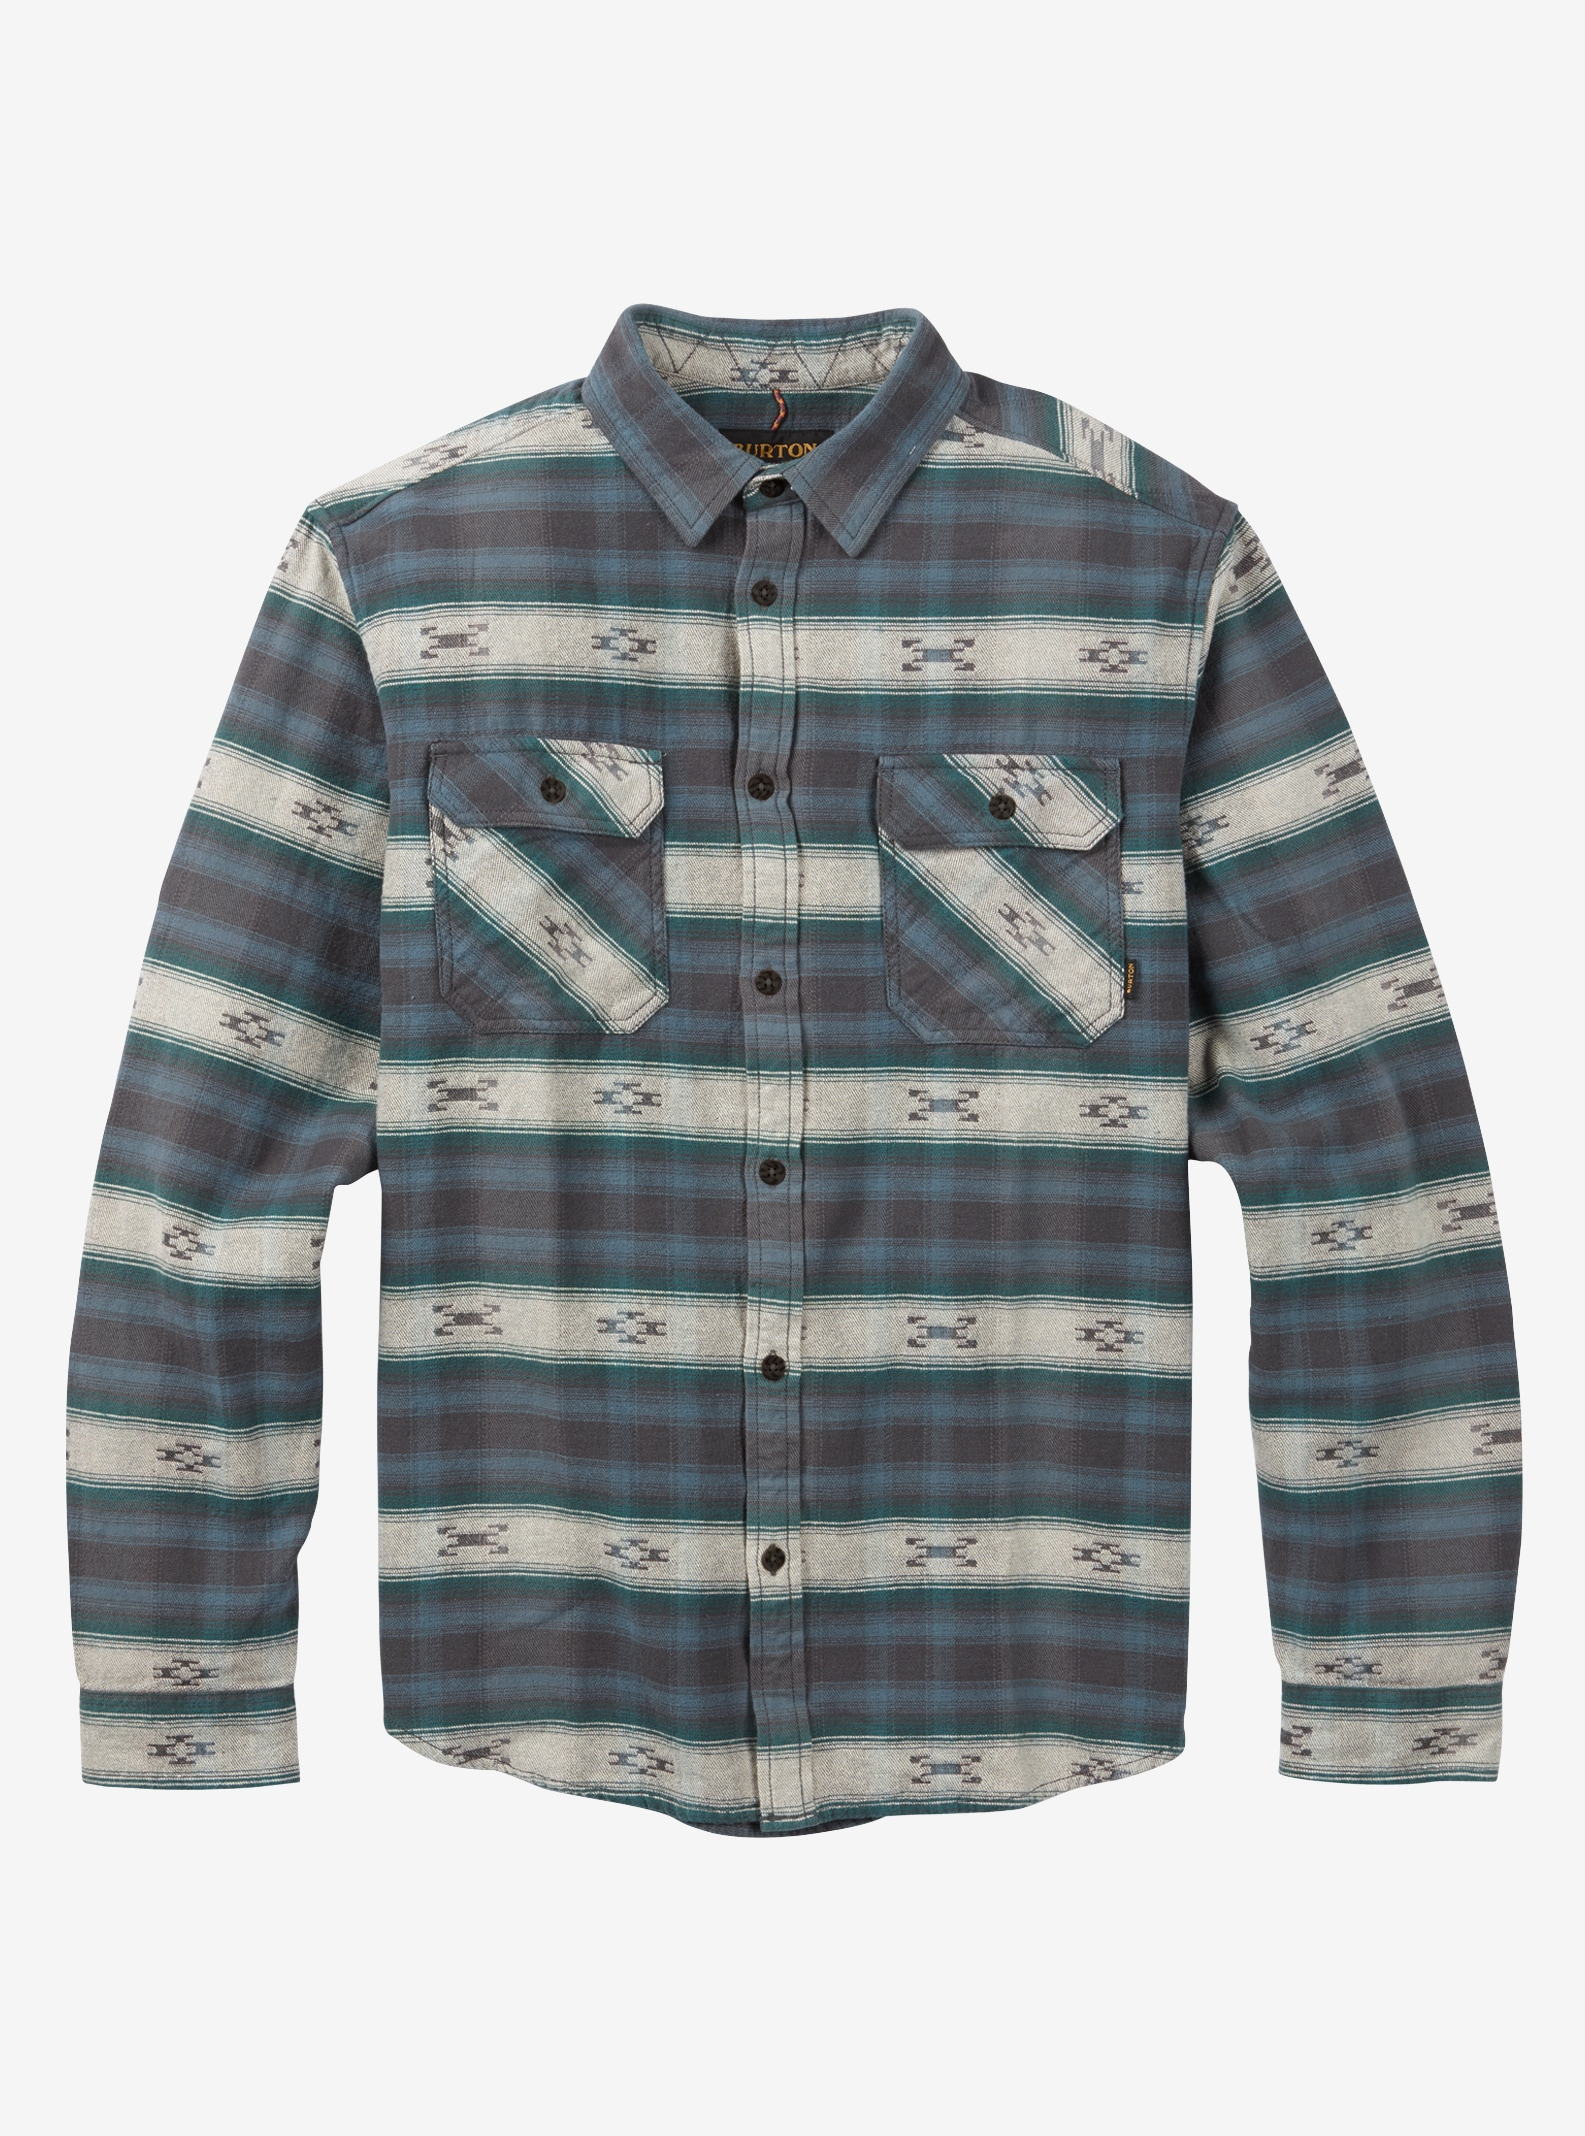 Men's Burton Brighton Burly Flannel shown in LA Sky Azrek